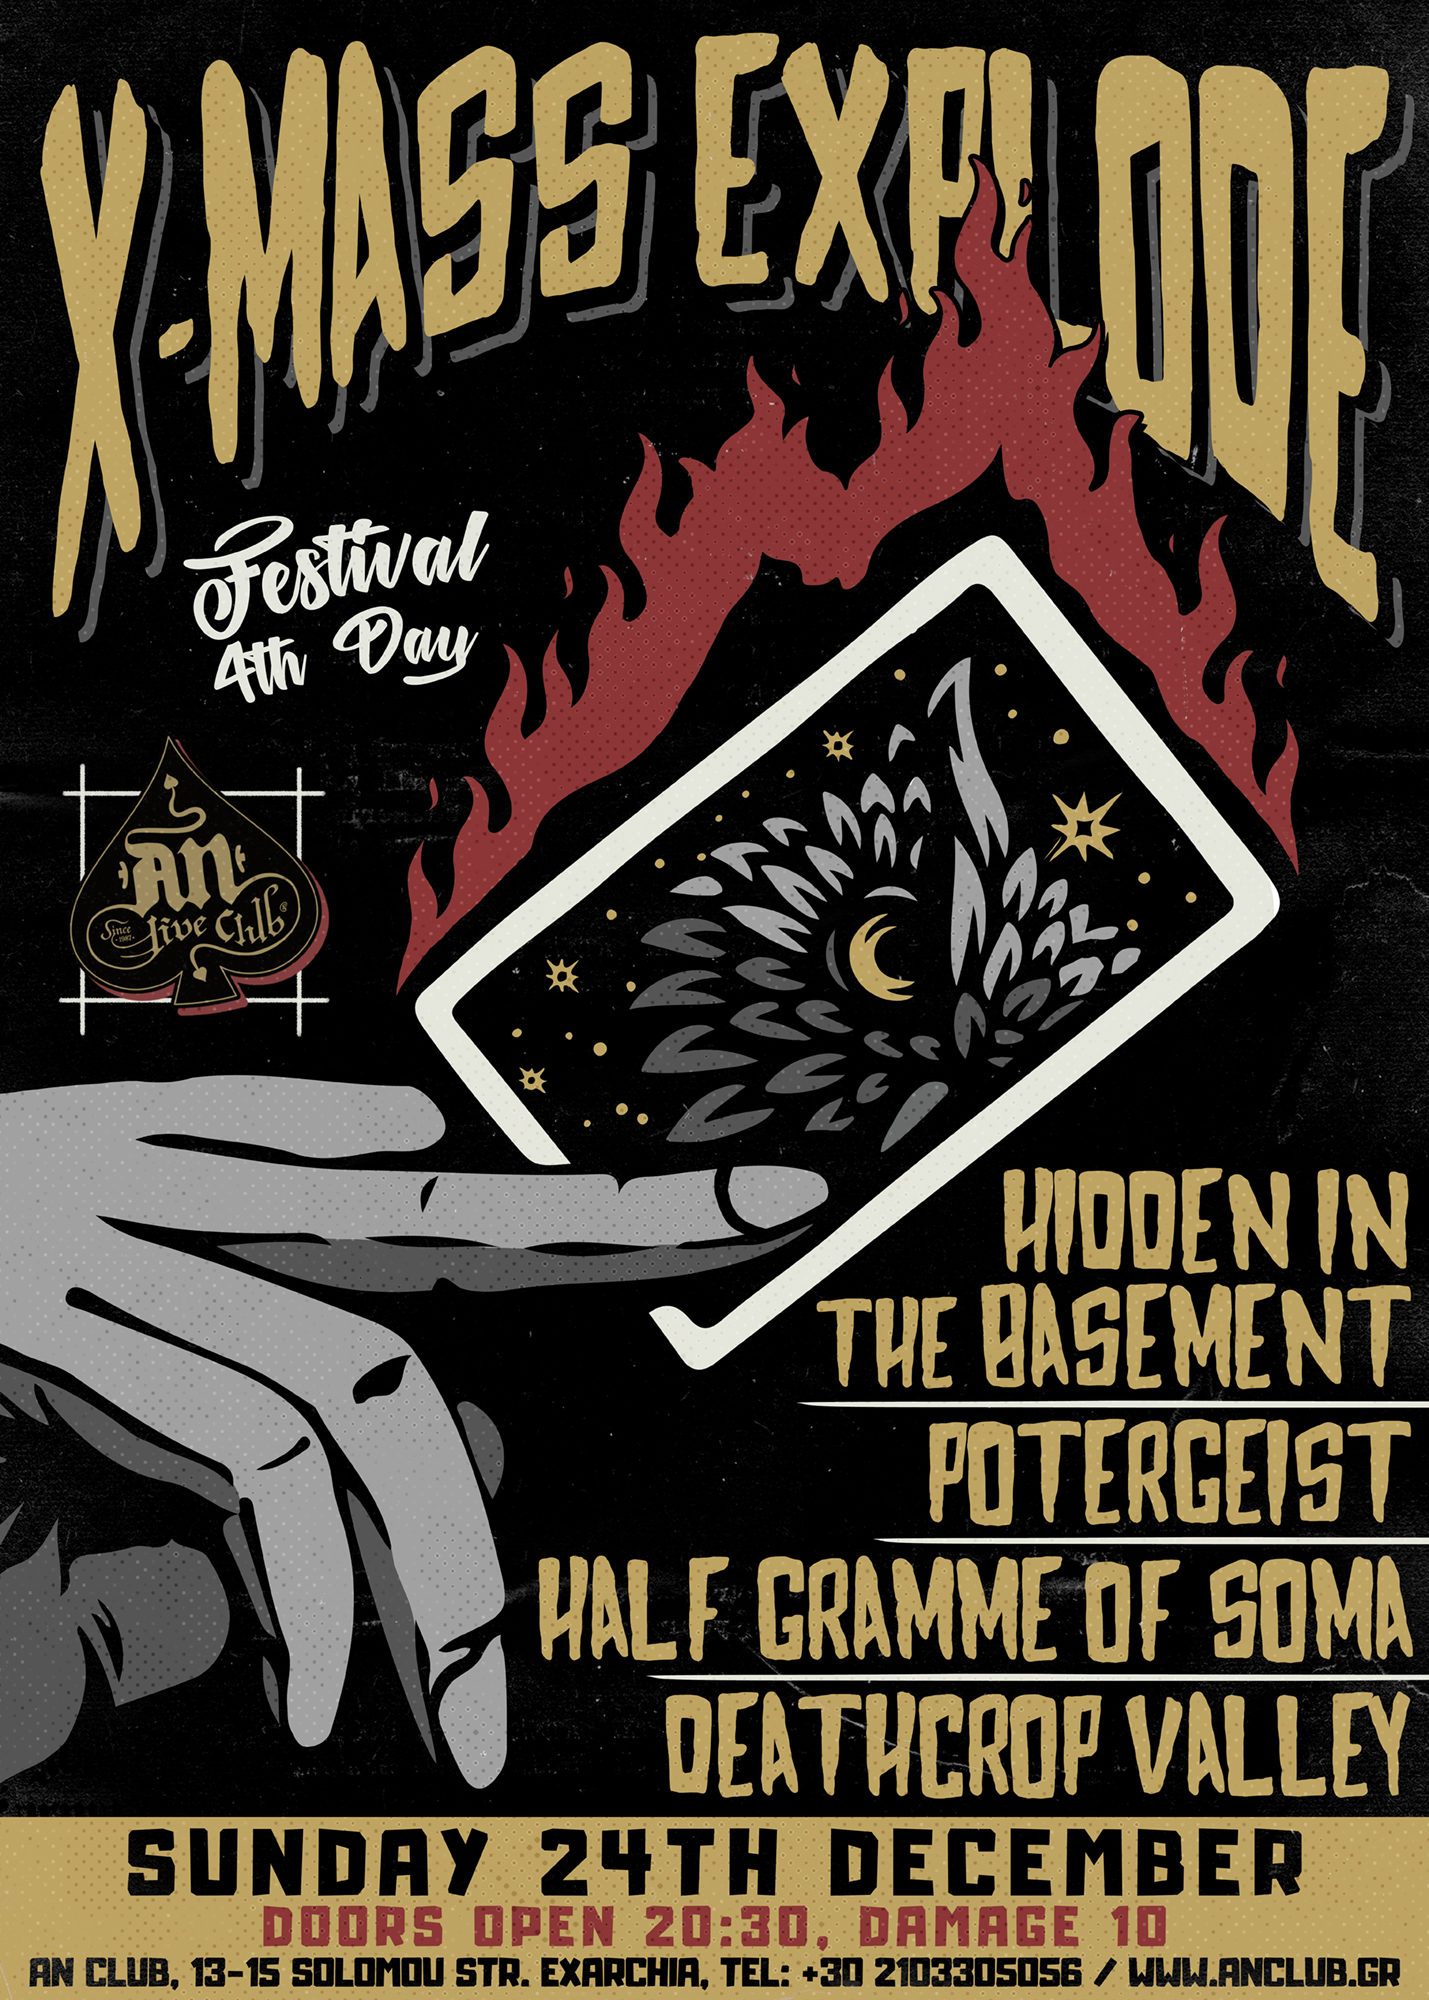 24.12.2017 – X-mass Explode Fest / Day 4: Hidden In The Basement, Potergeist, Half Gramme Of Soma, Deathcrop Valley